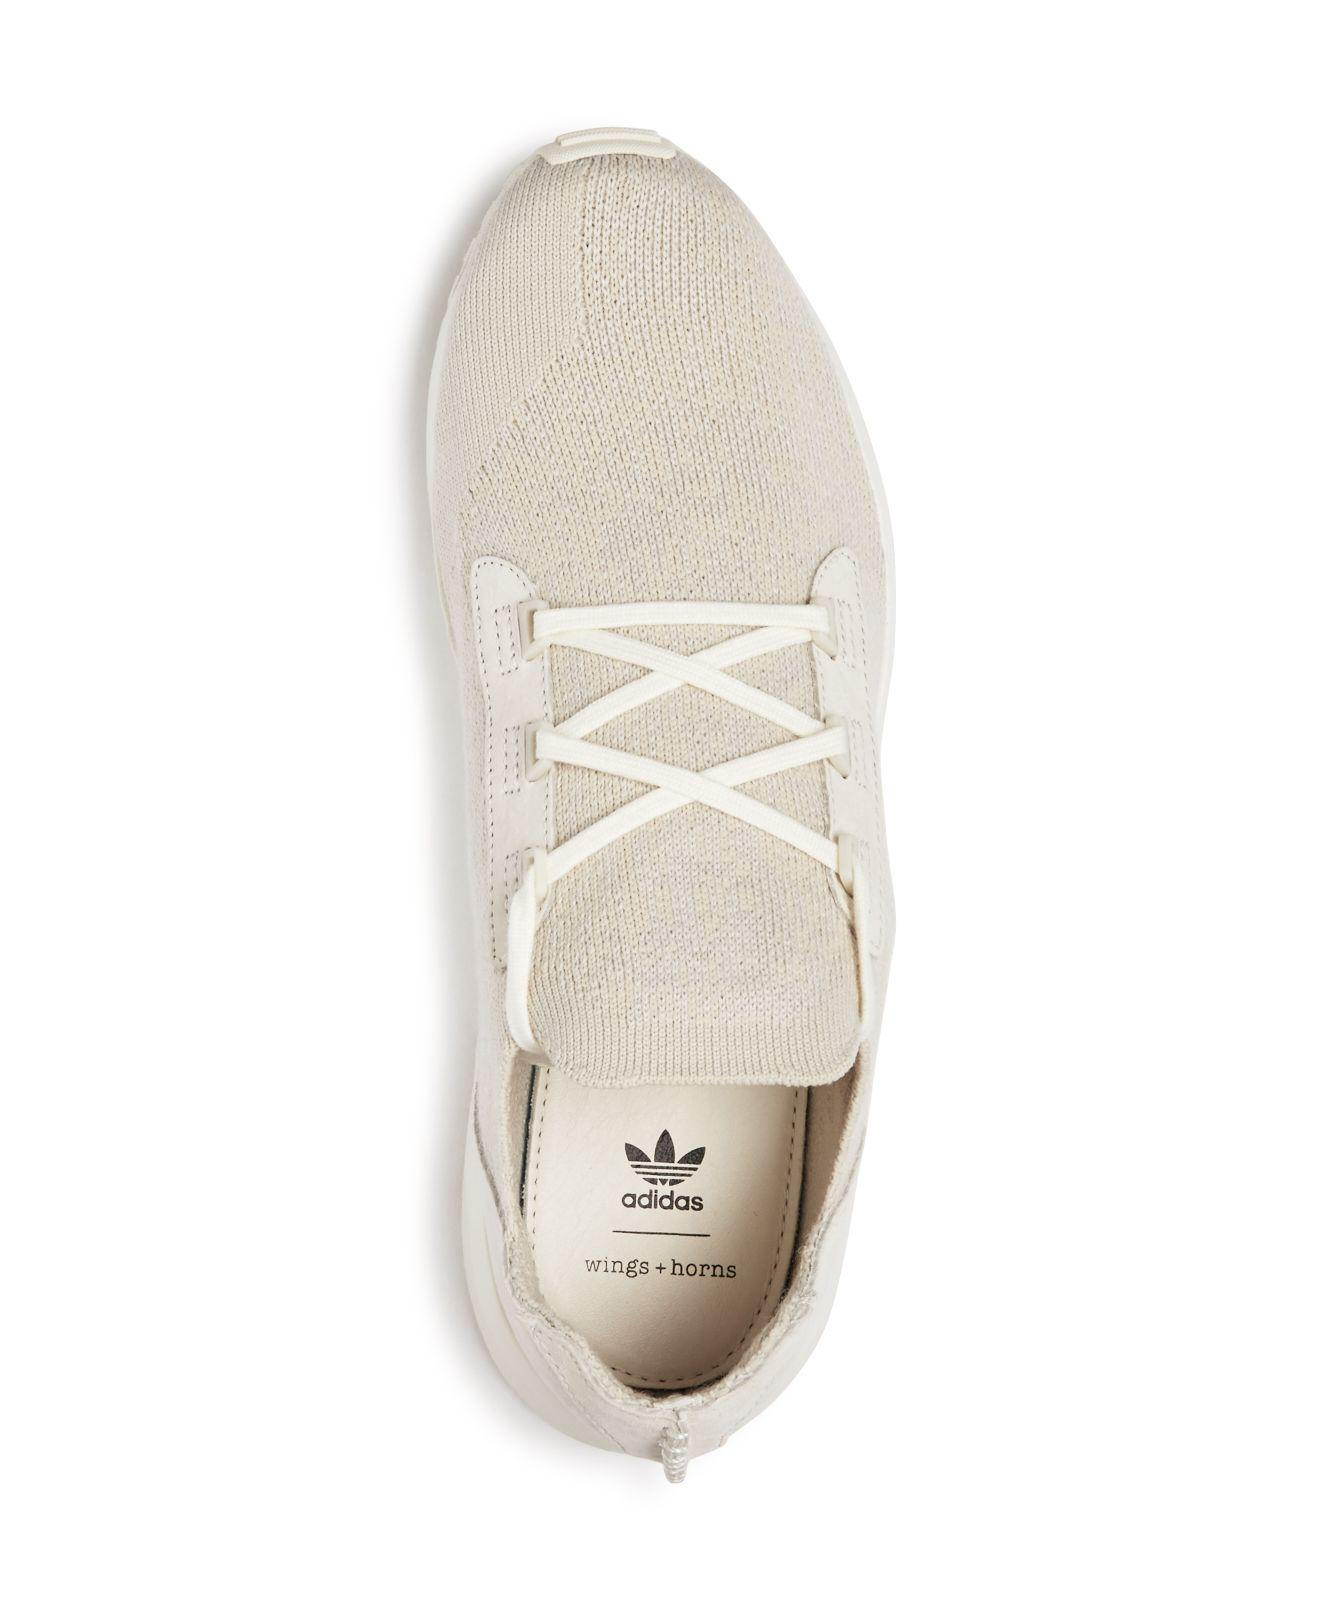 adidas Originals Leather X Wings And Horns Men's Zx Flux Adv X Lace Up Sneakers in White